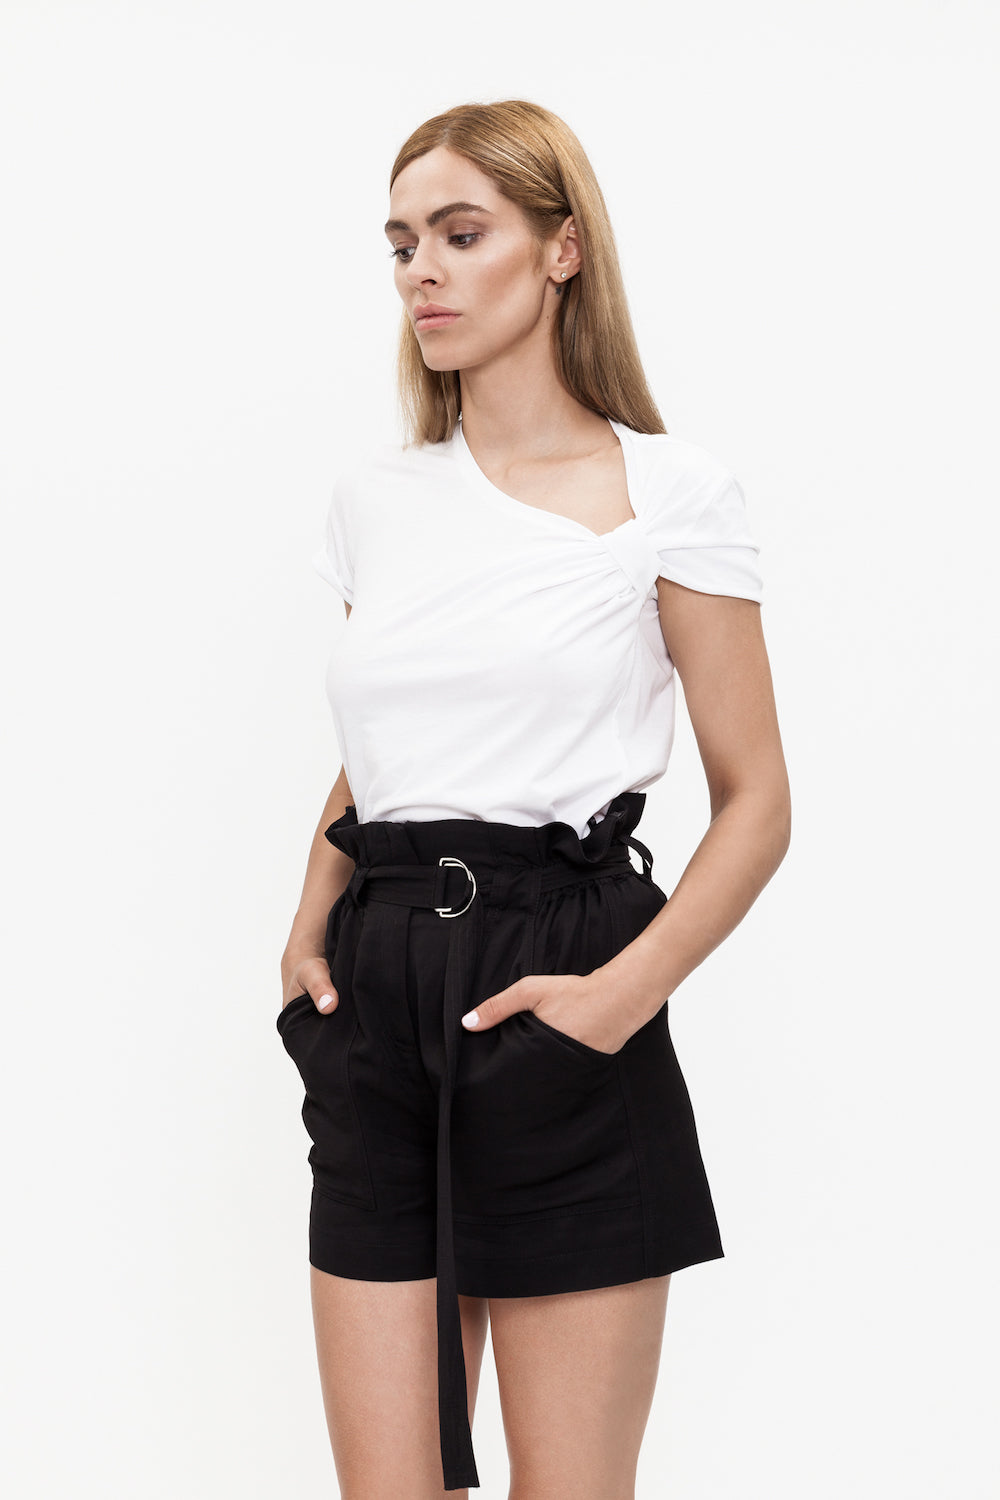 CÉLINE white t-shirt